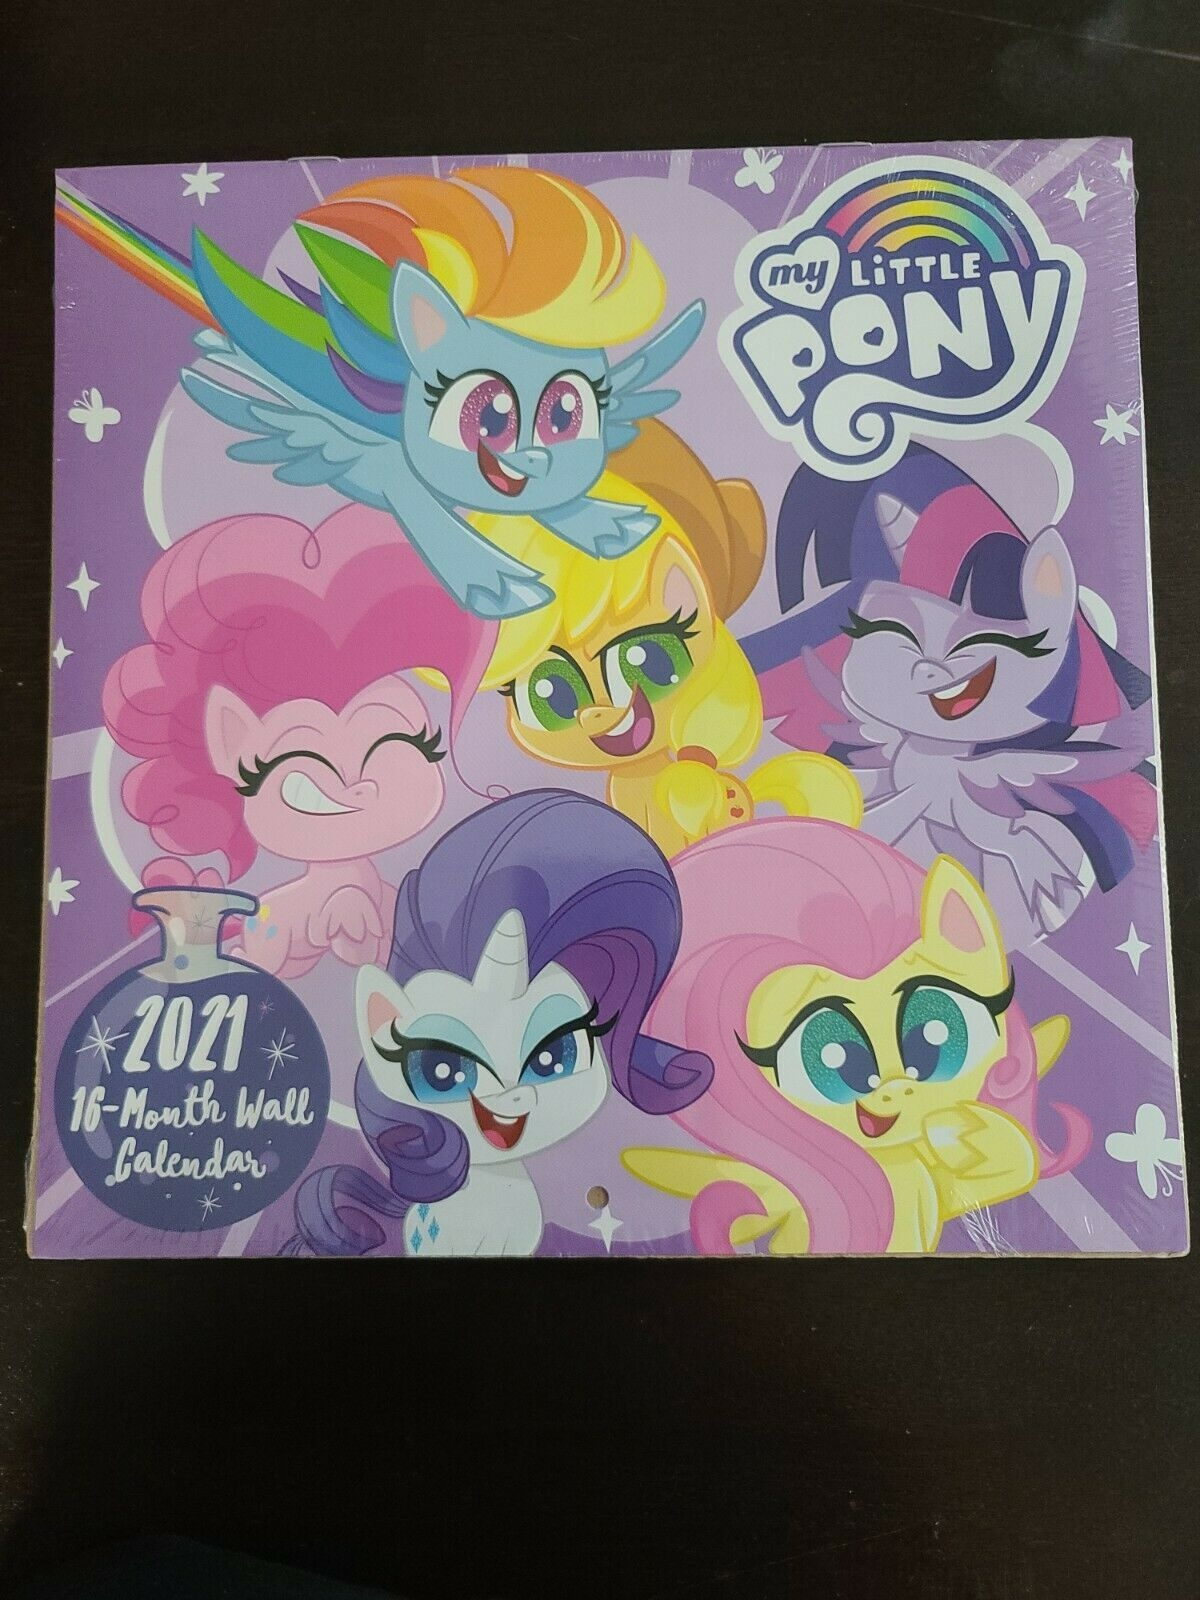 My Little Pony Wall Calendar 2021 - 16 Month - New Sealed Retro Classic  Style